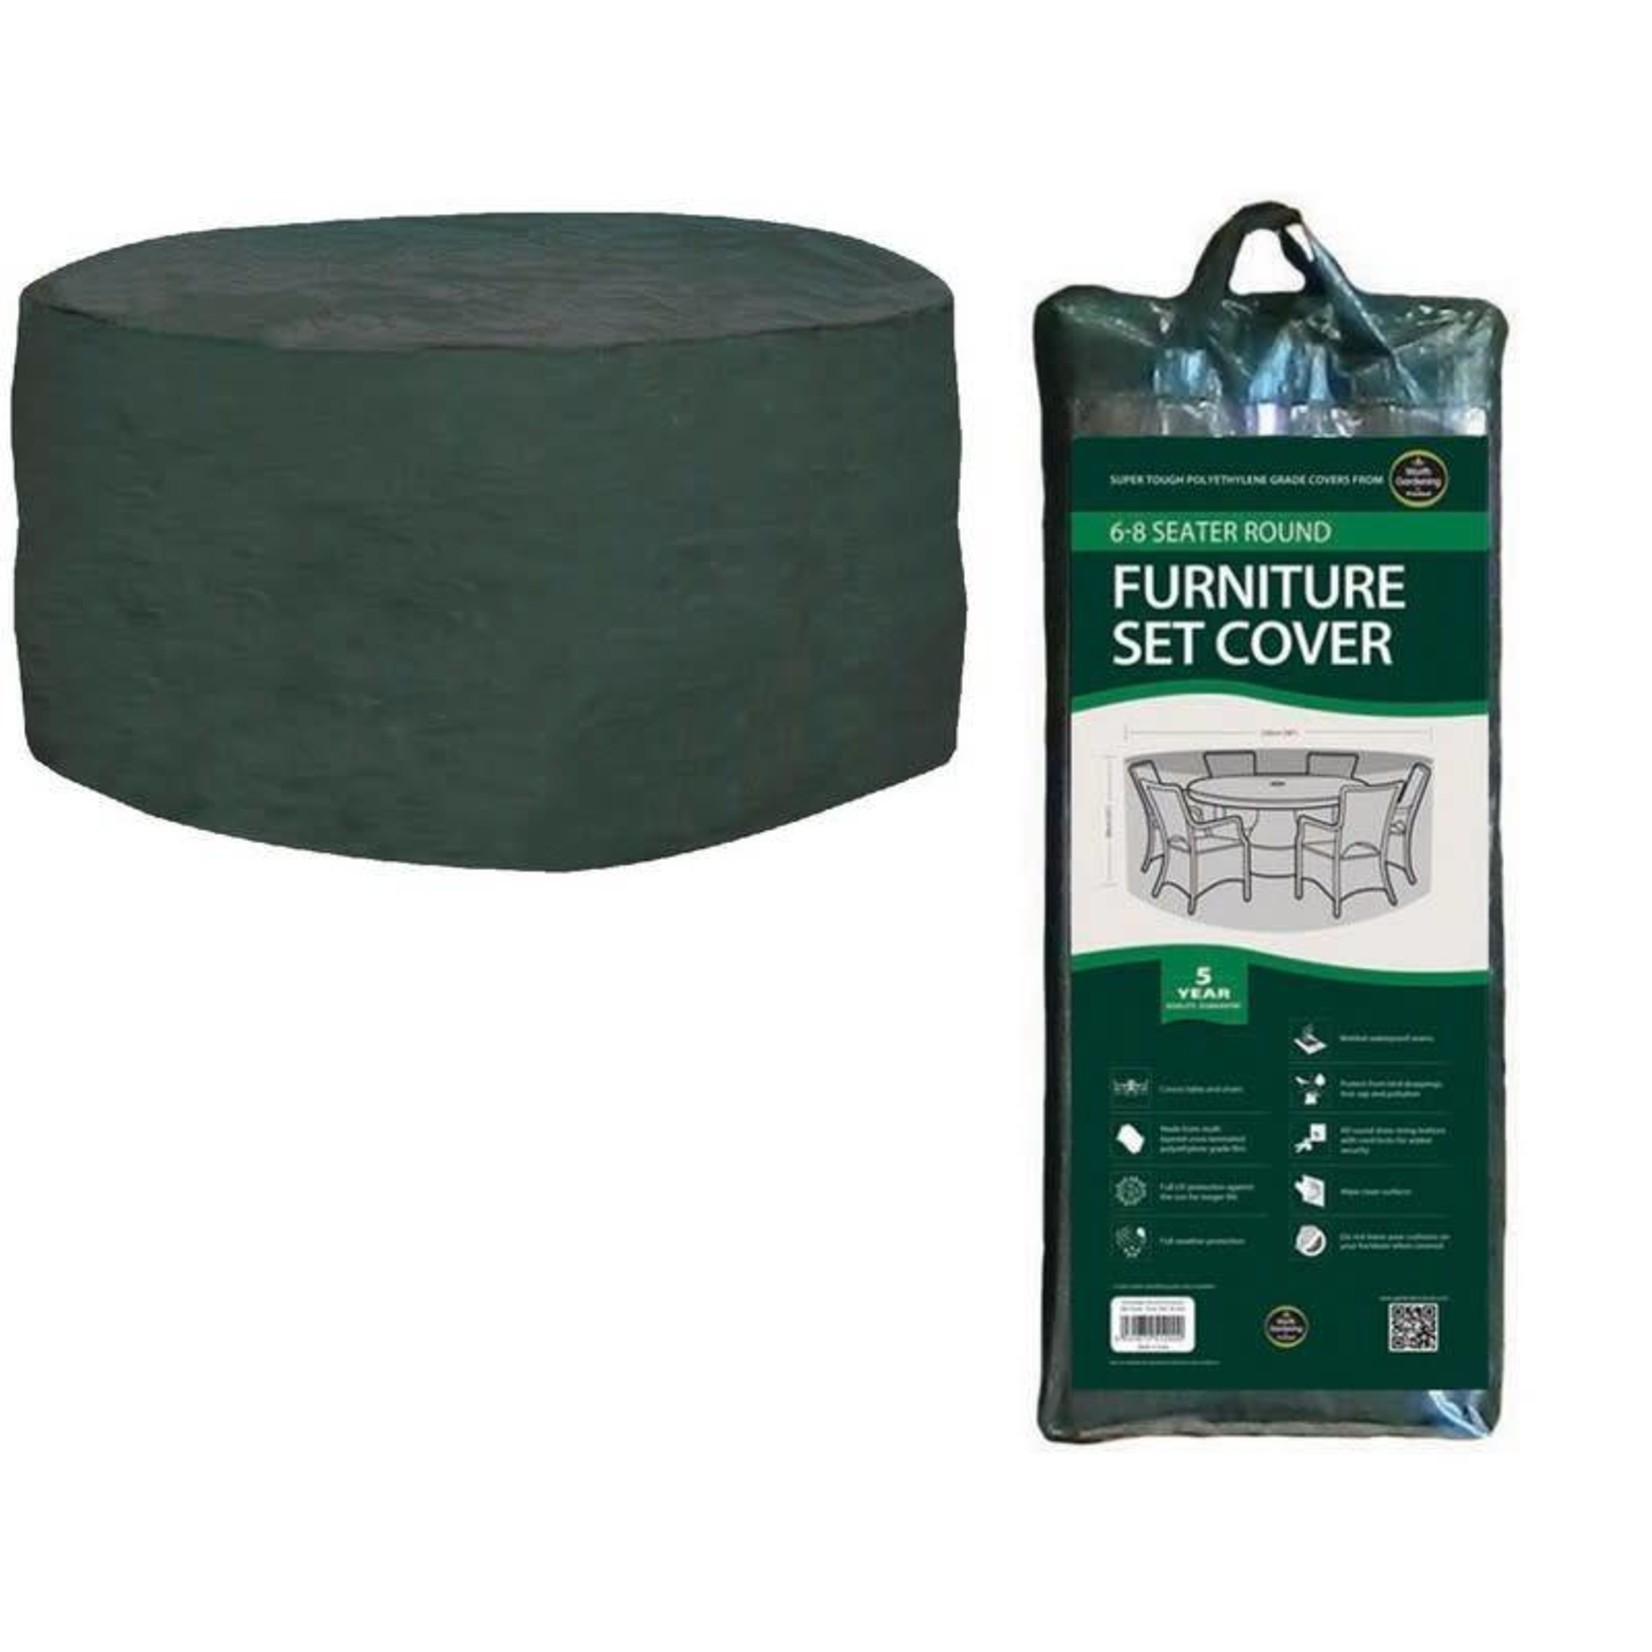 GARLAND 6-8 SEATER ROUND FURNITURE SET COVER GREEN